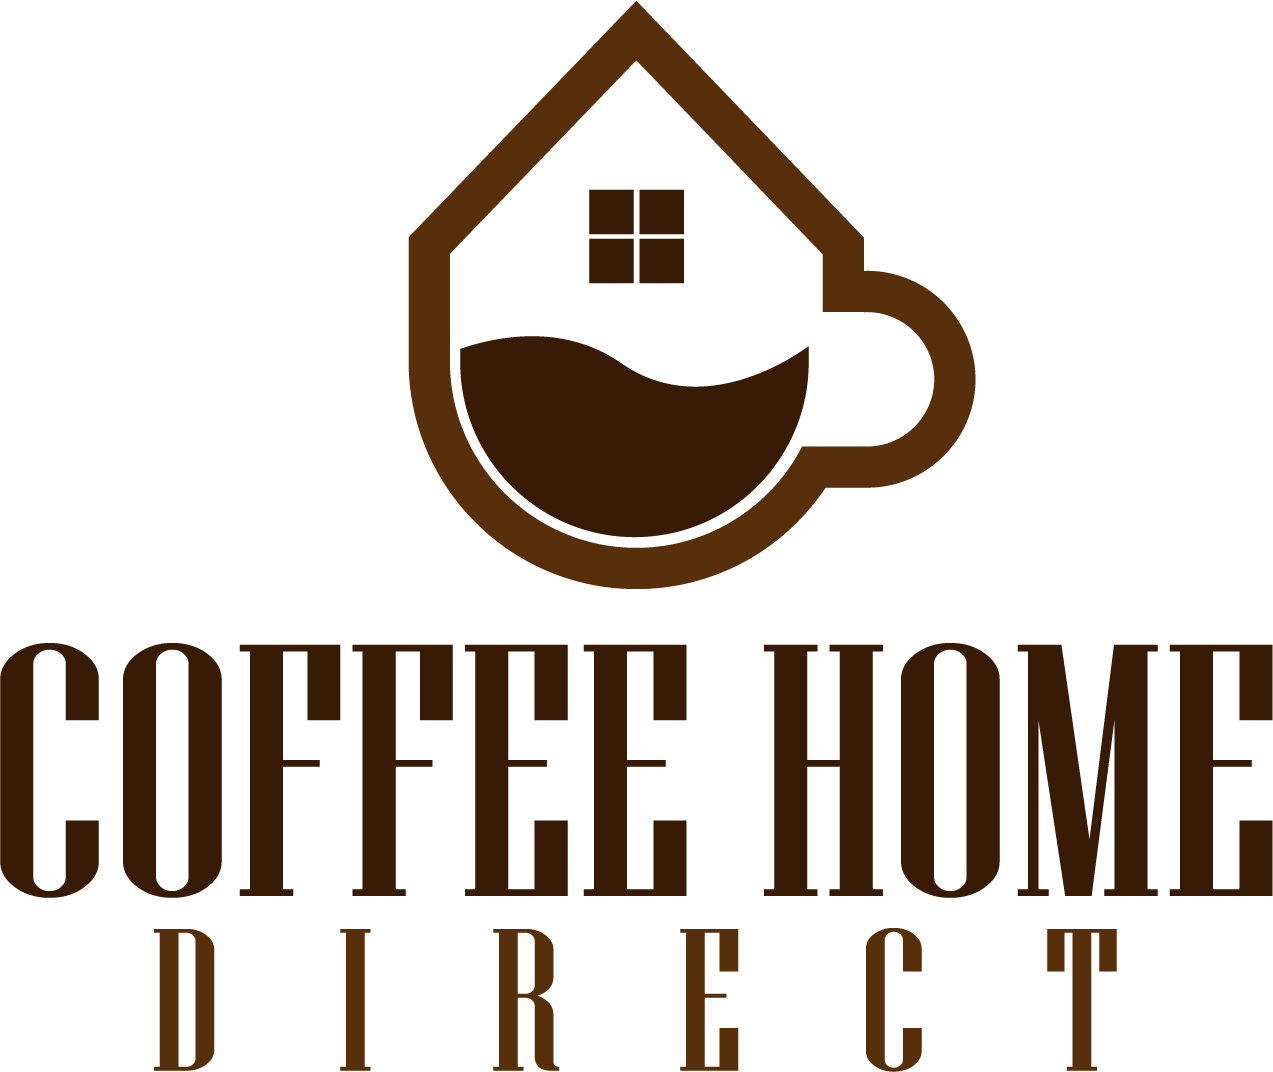 coffeehomedirect.com